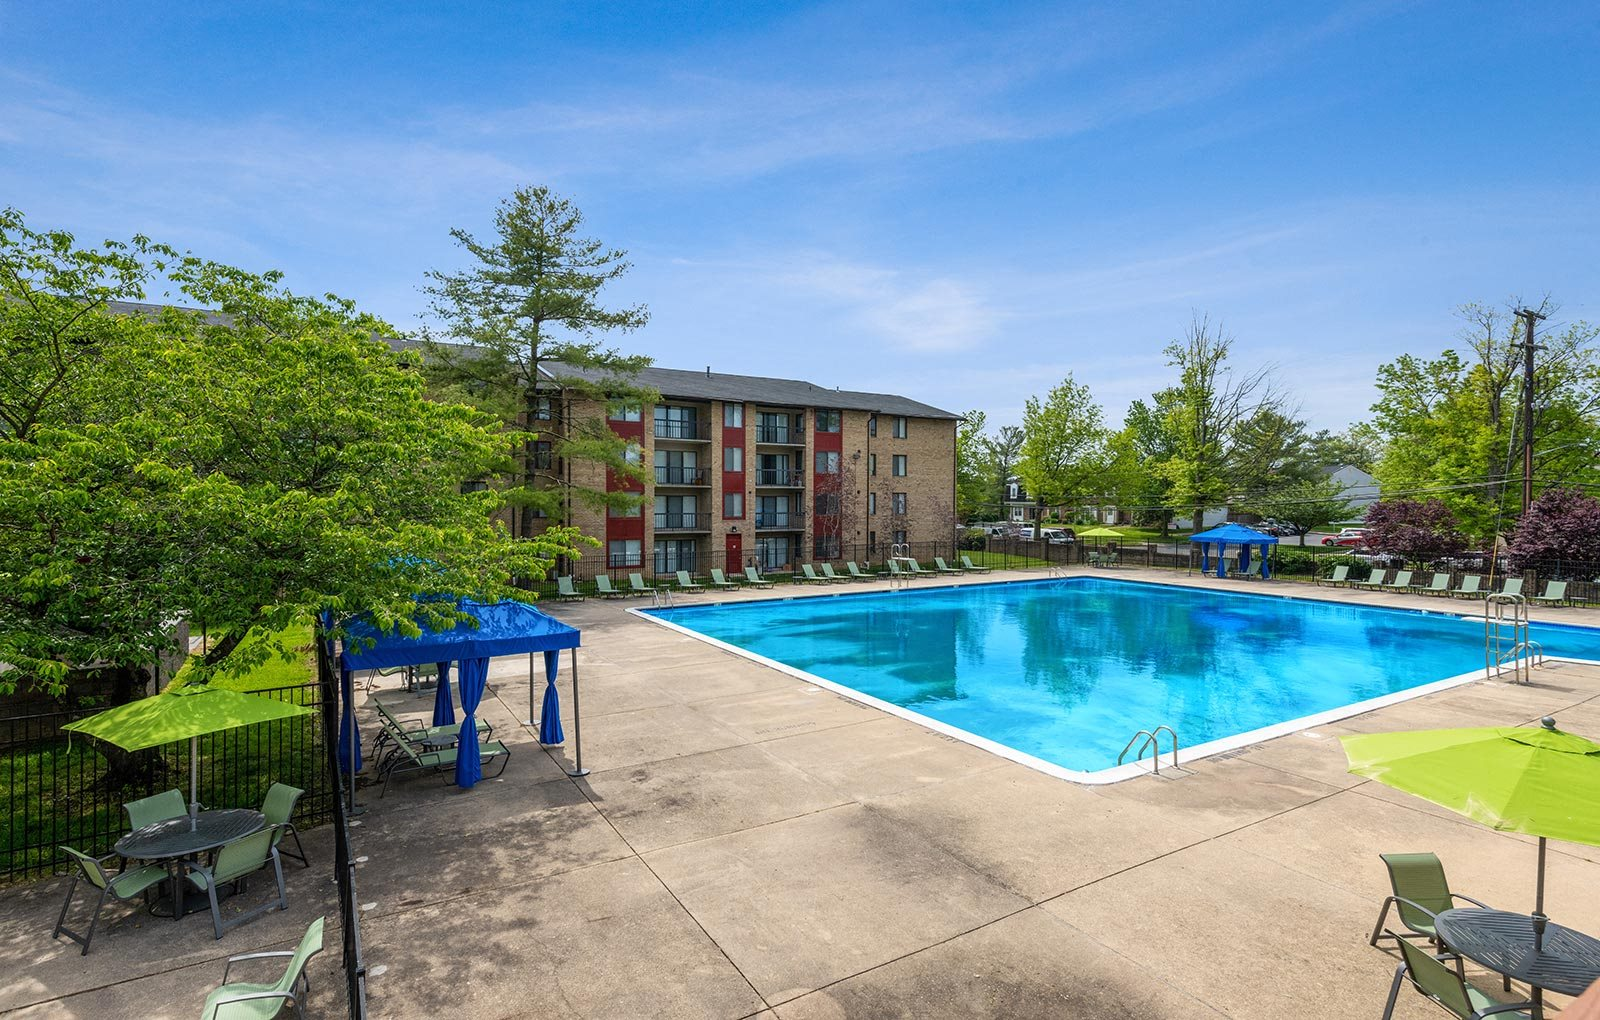 Swimming pool courtyard at Spring Parc Apartments